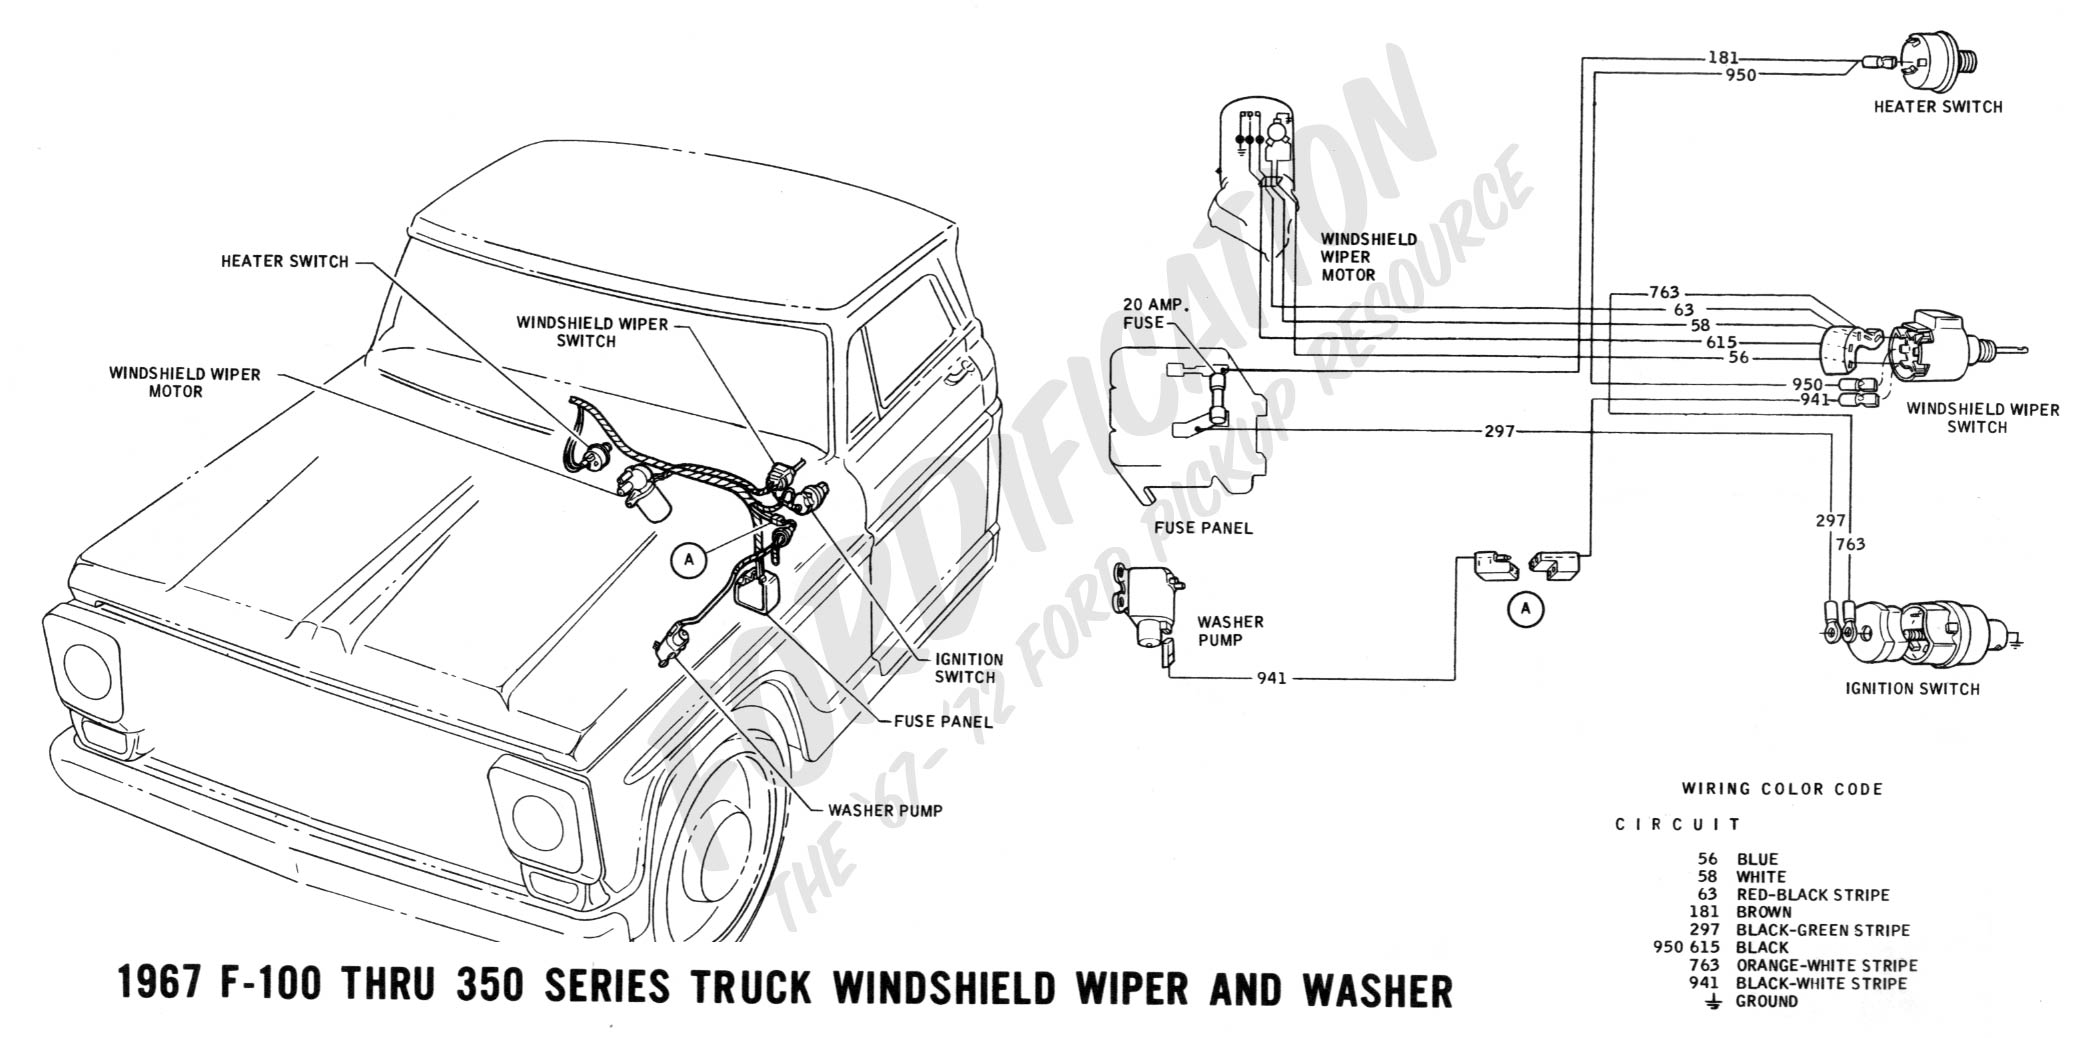 wiring diagram ford mustang 1968 wiring discover your wiring 1967 f100 wiring harness 69 f250 wiring diagram besides 1966 mustang